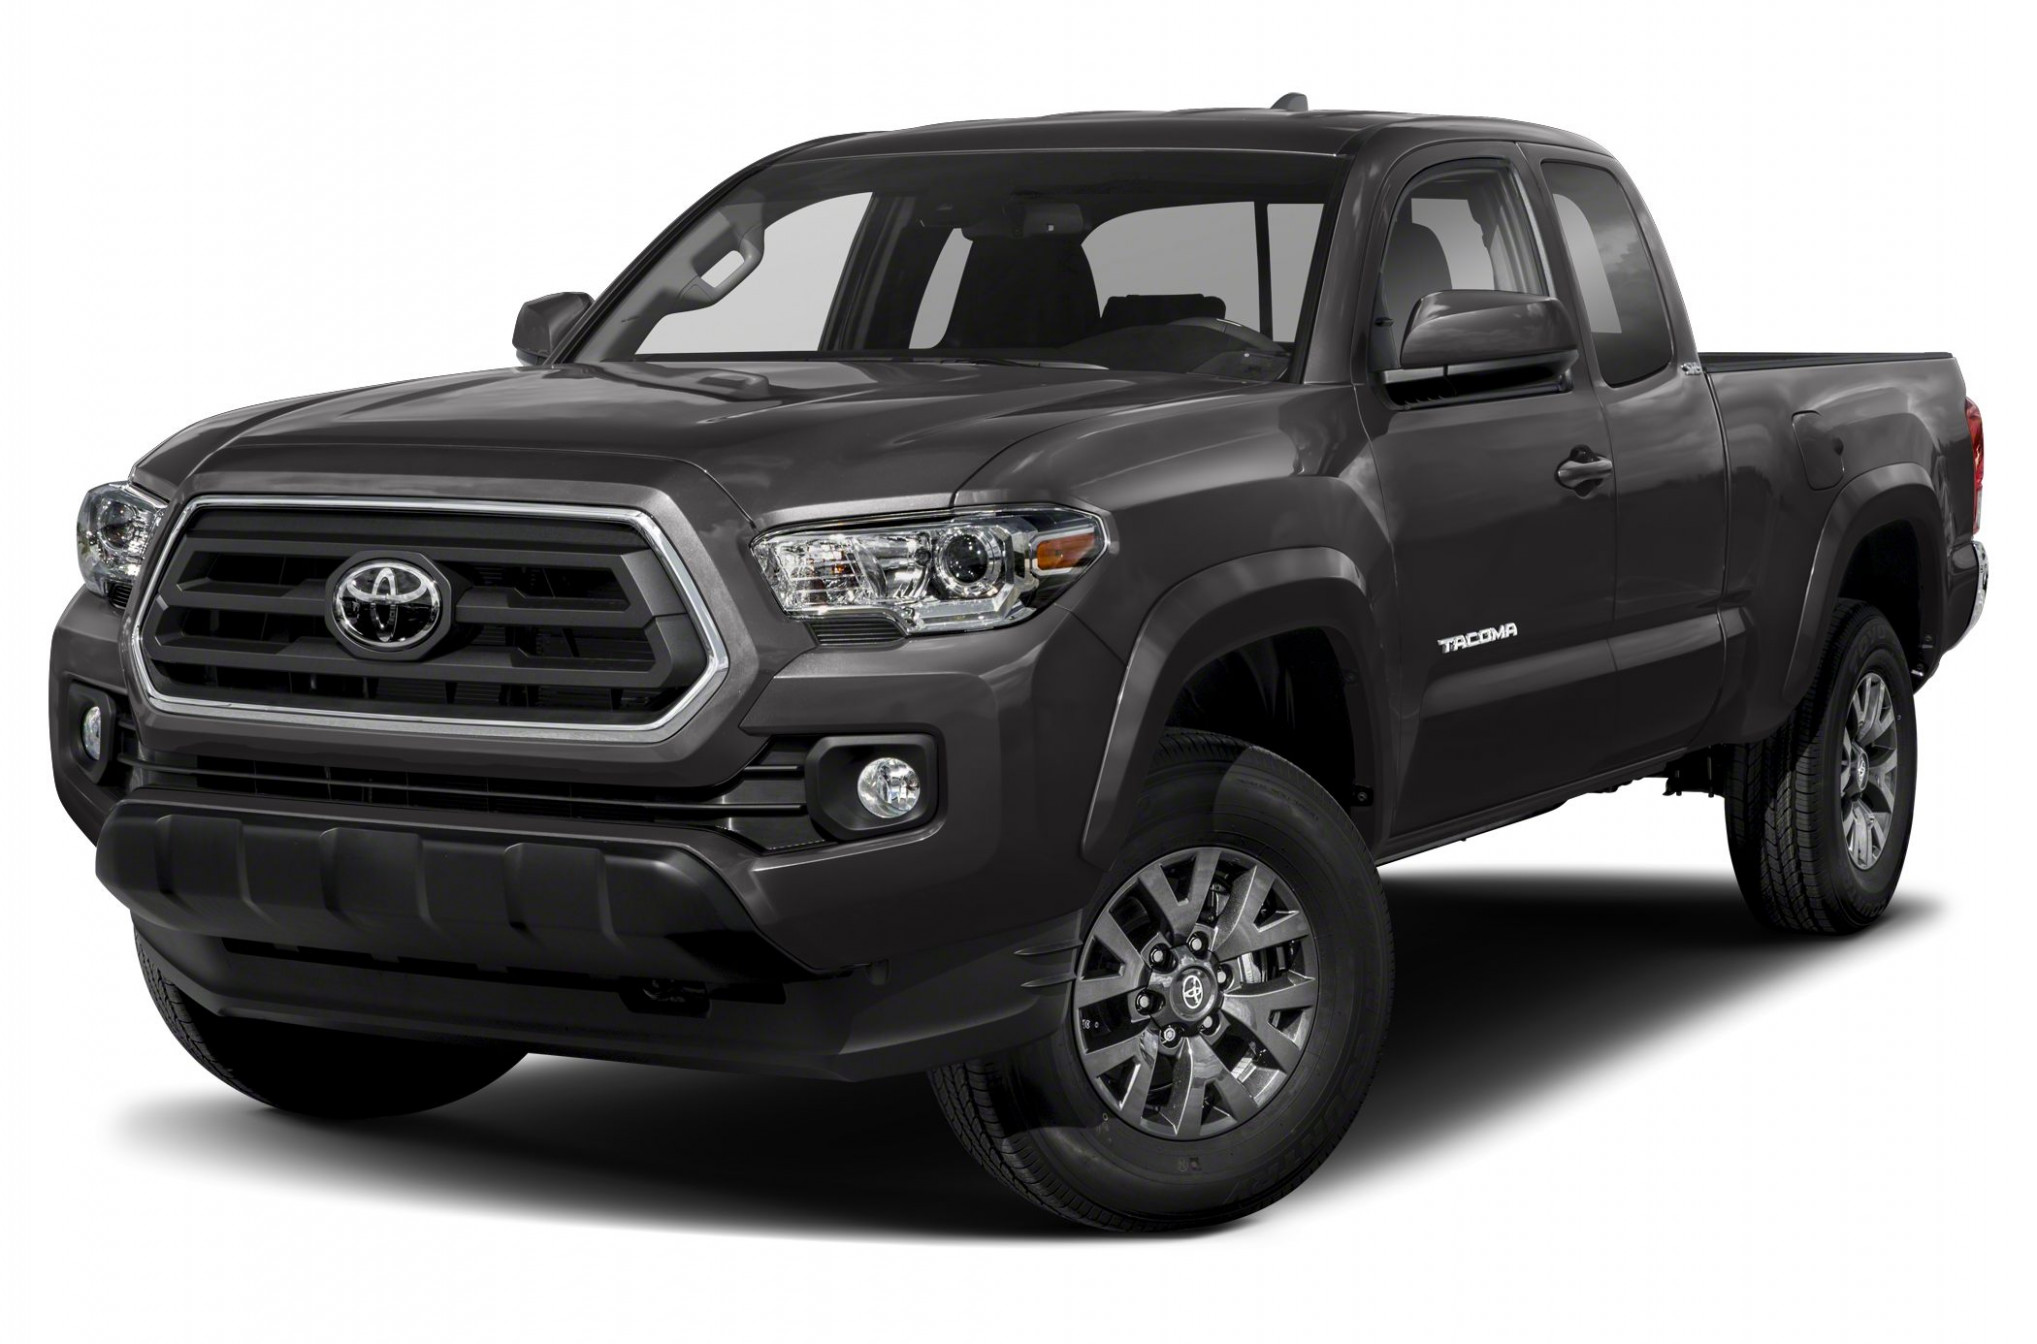 8 Toyota Tacoma SR V8 8x8 Access Cab 8.8 in. WB for Sale